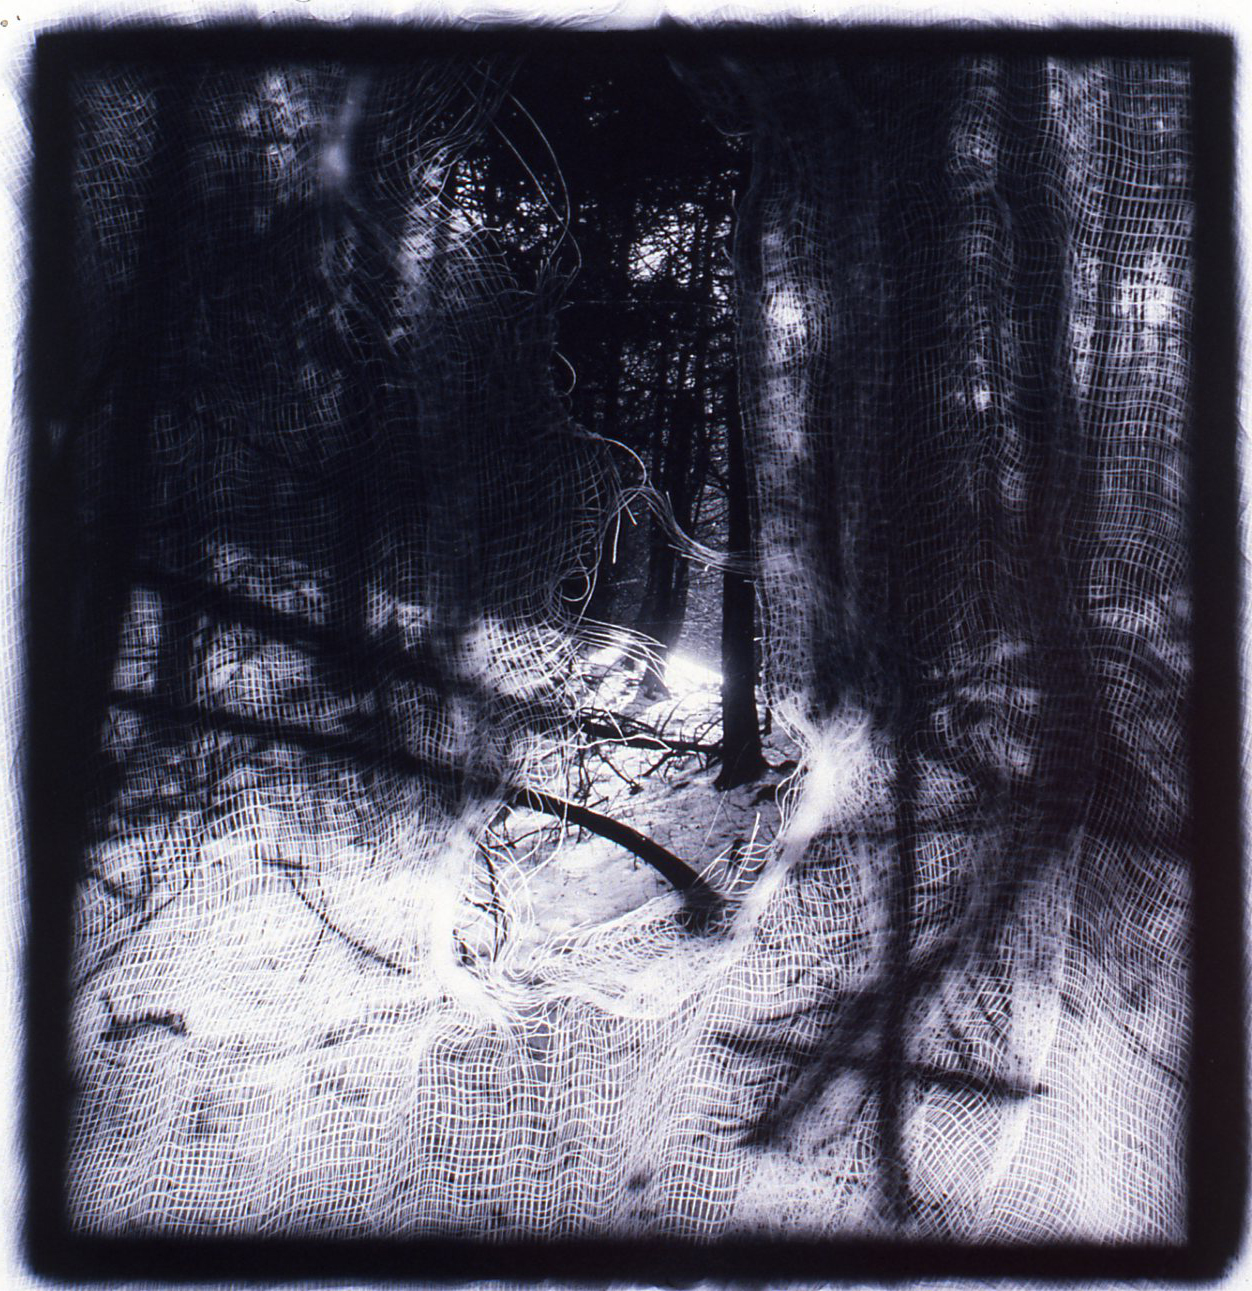 Passages Sun Rise over the Path  , Gelatin Silver print, 10x10 inches, 1989-1990, unique print